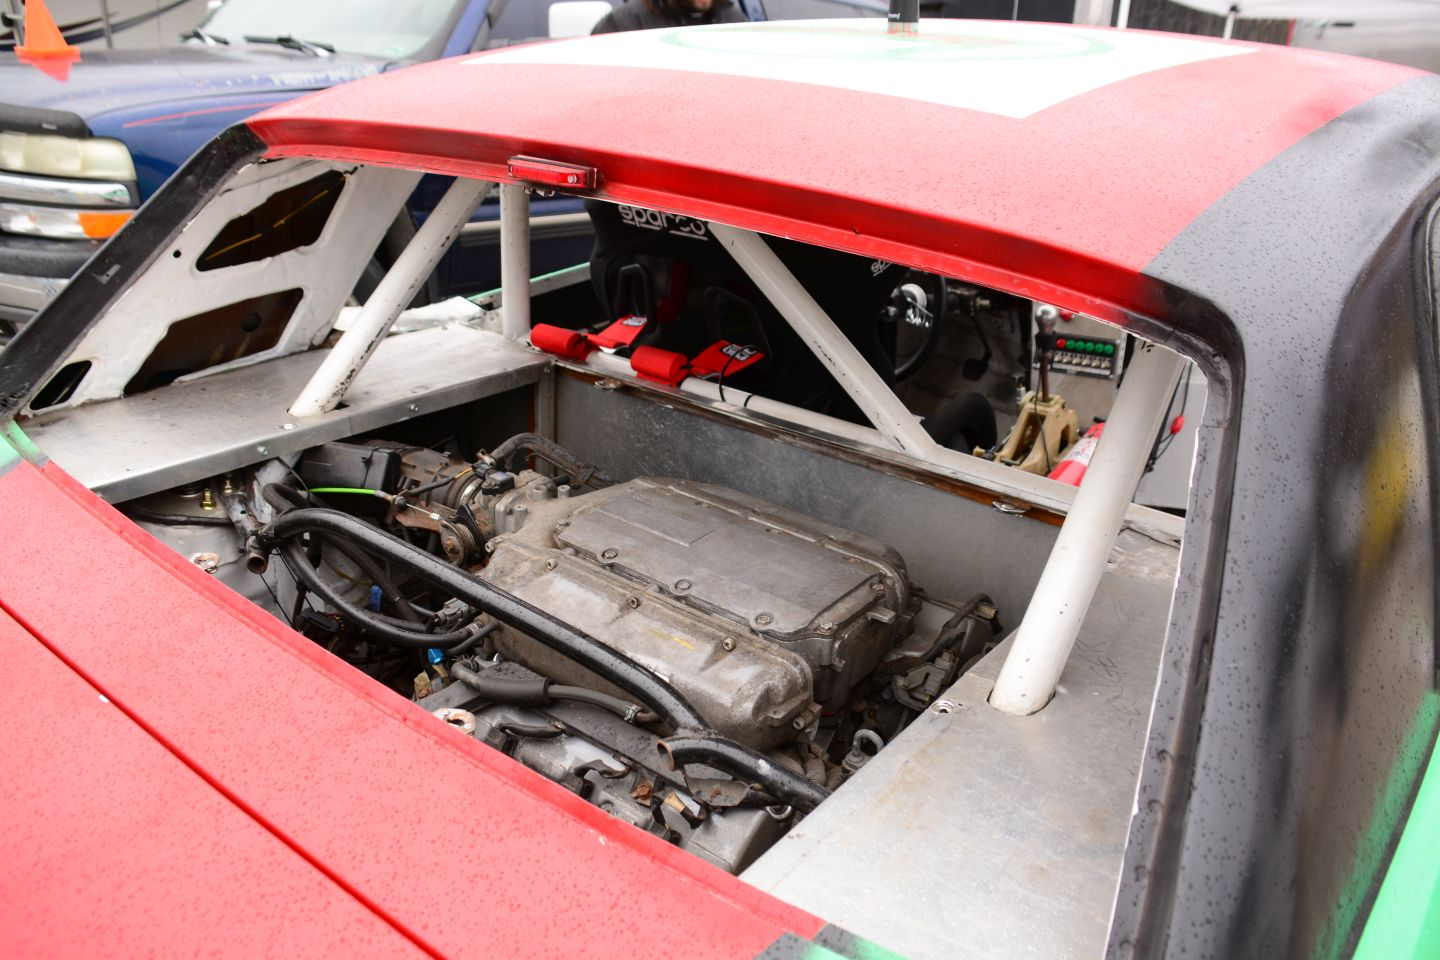 Mustang Savagery: Dead Horse Beaters' Honda-Powered Pony